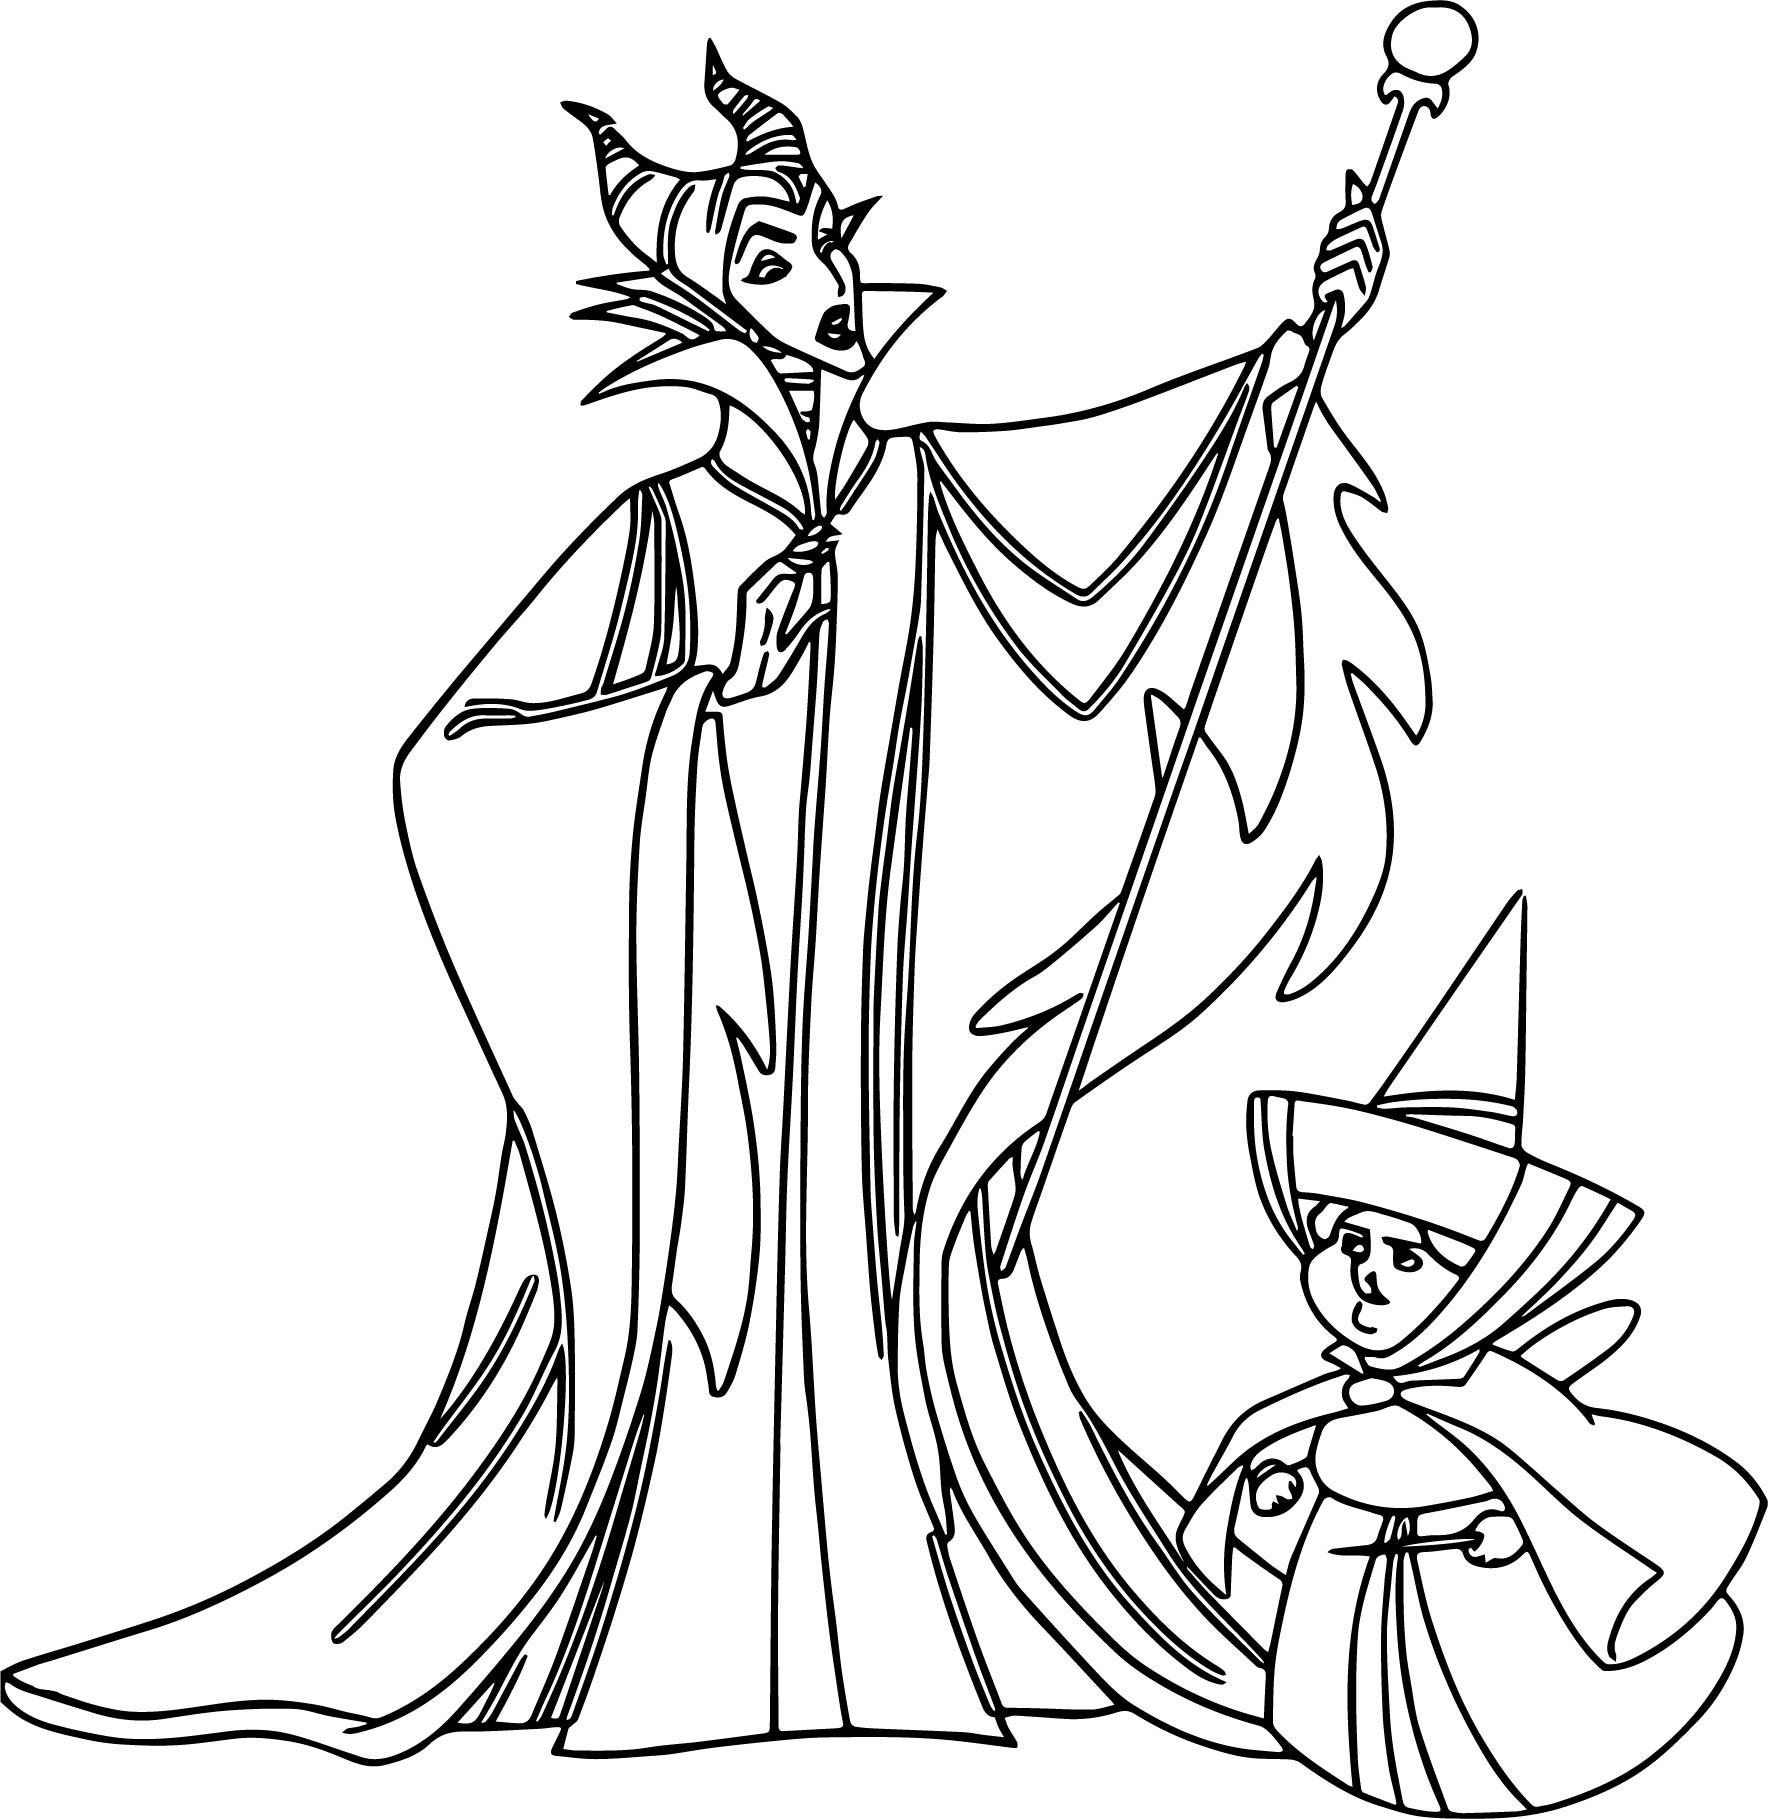 maleficent coloring pages walt disney maleficent coloring pages color luna coloring pages maleficent